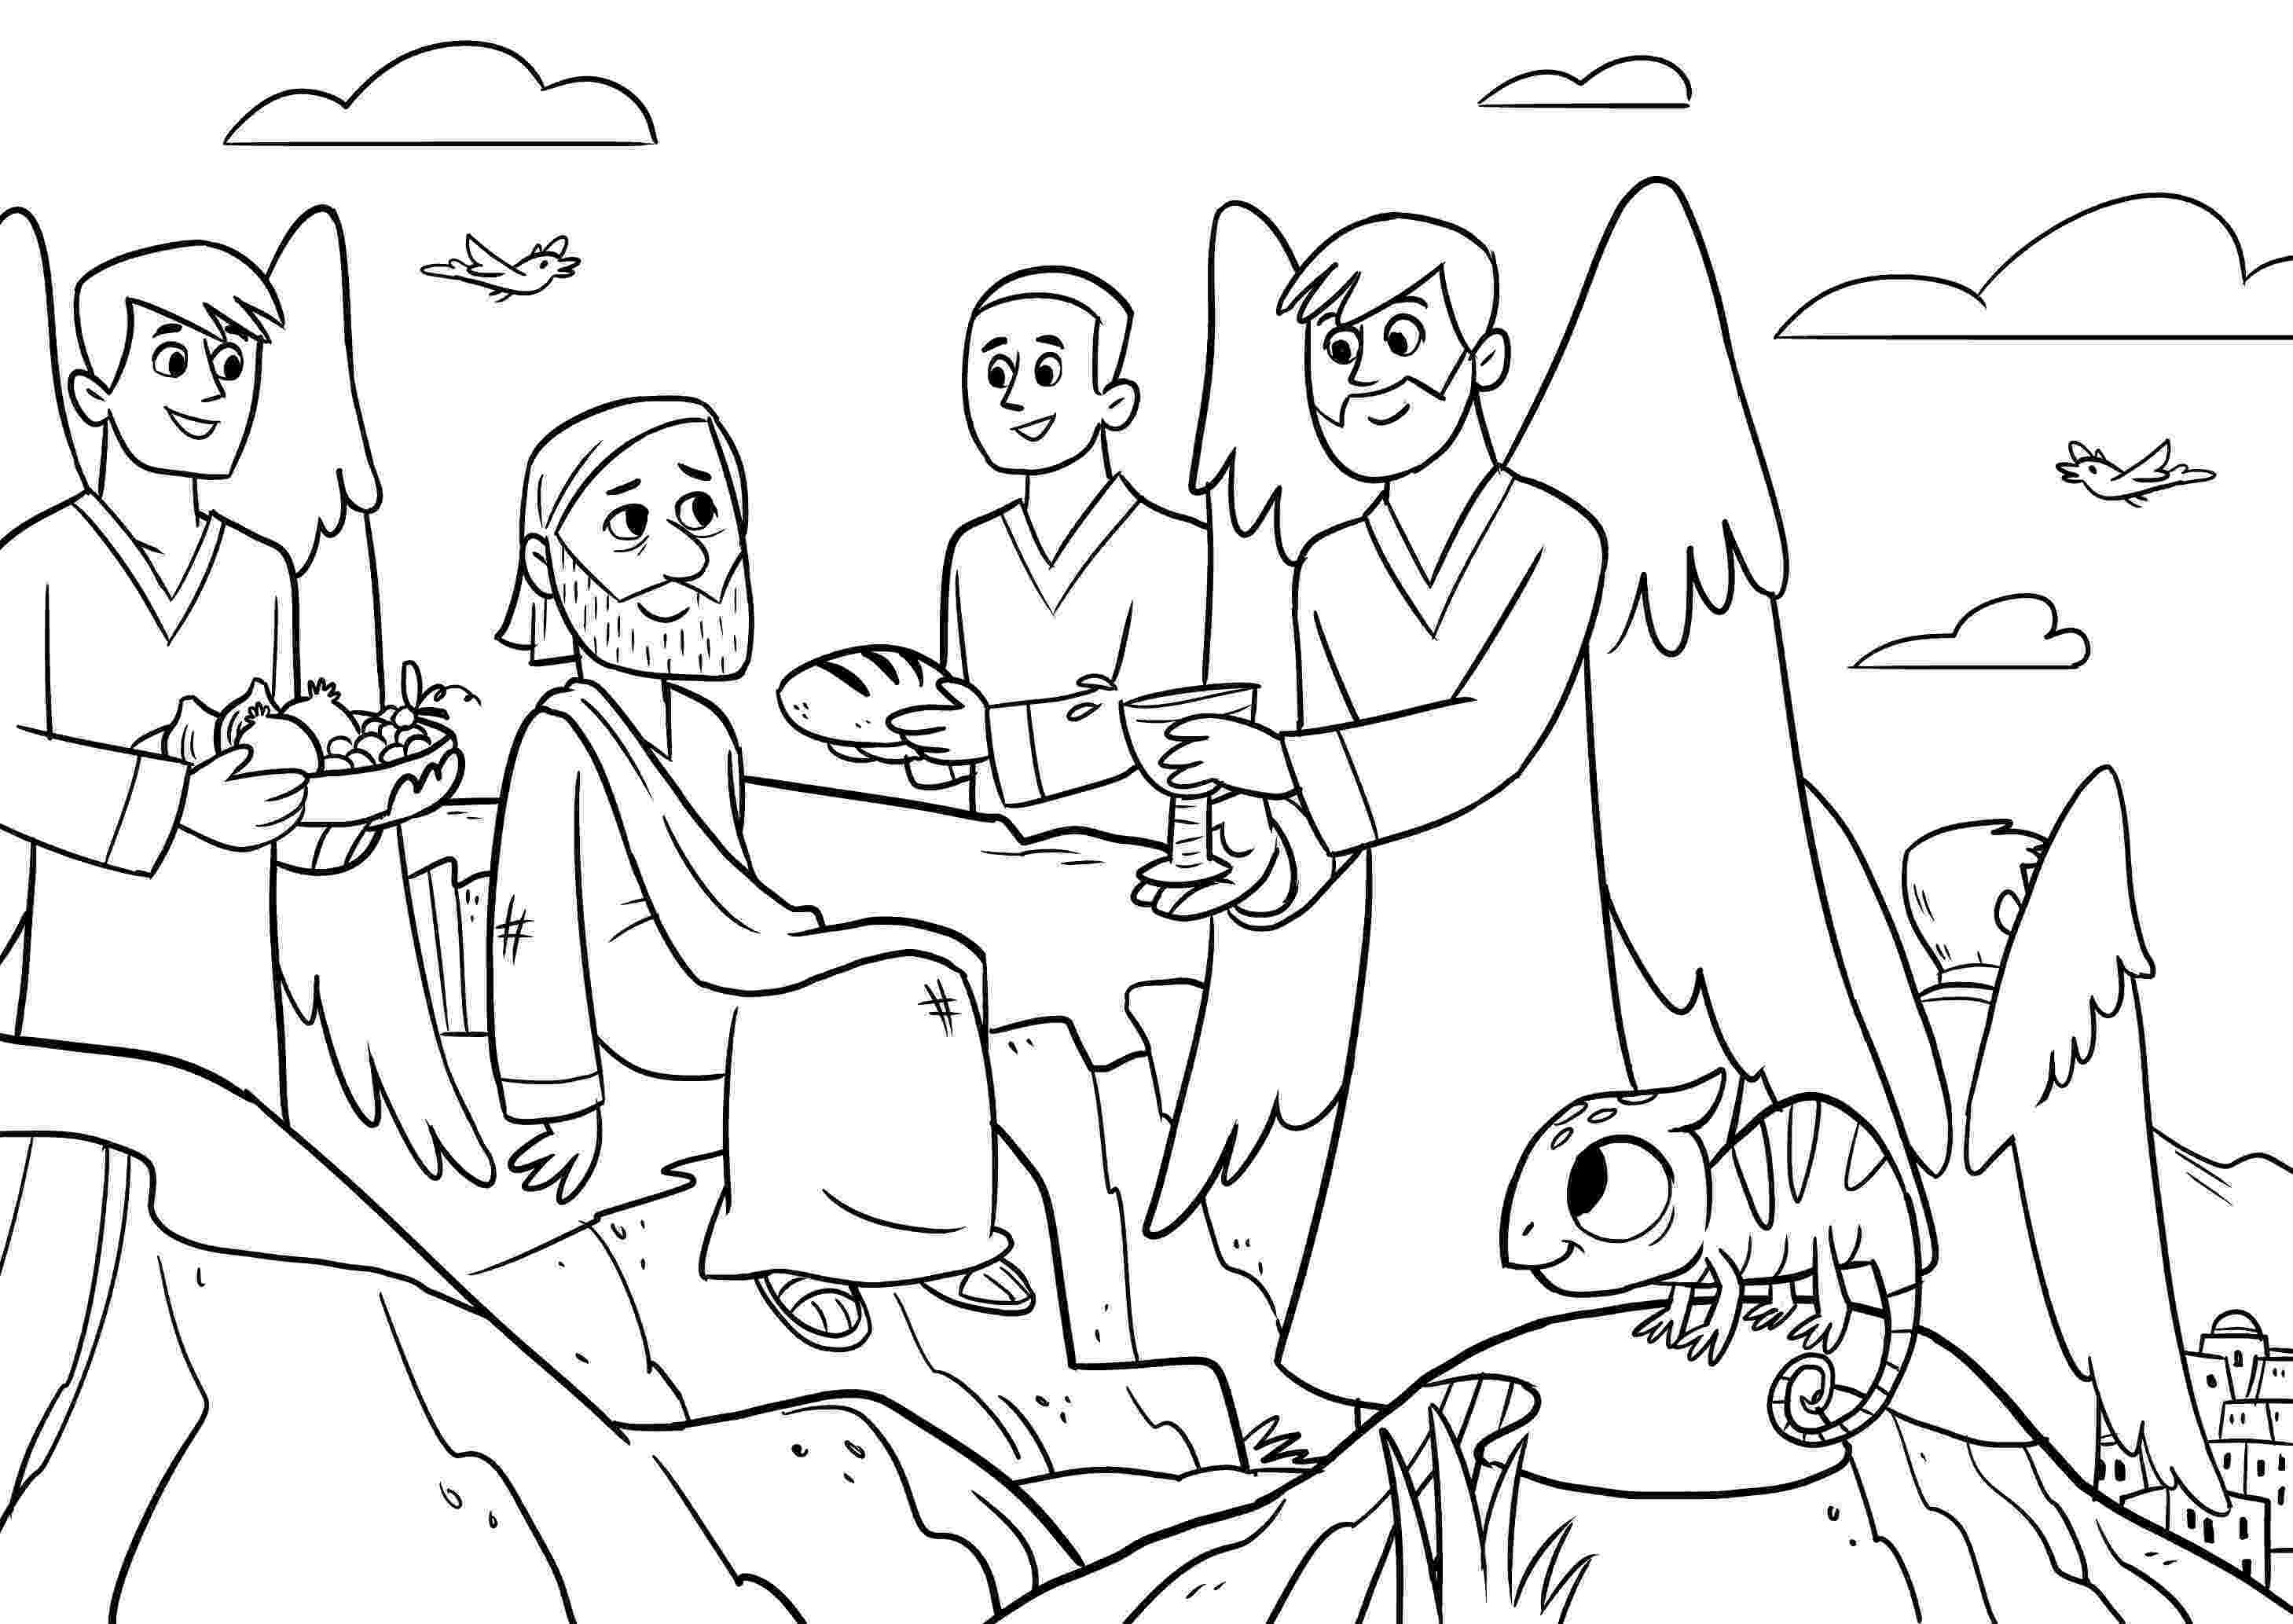 jesus temptation coloring sheet jesus temptation coloring page at getcoloringscom free temptation jesus sheet coloring